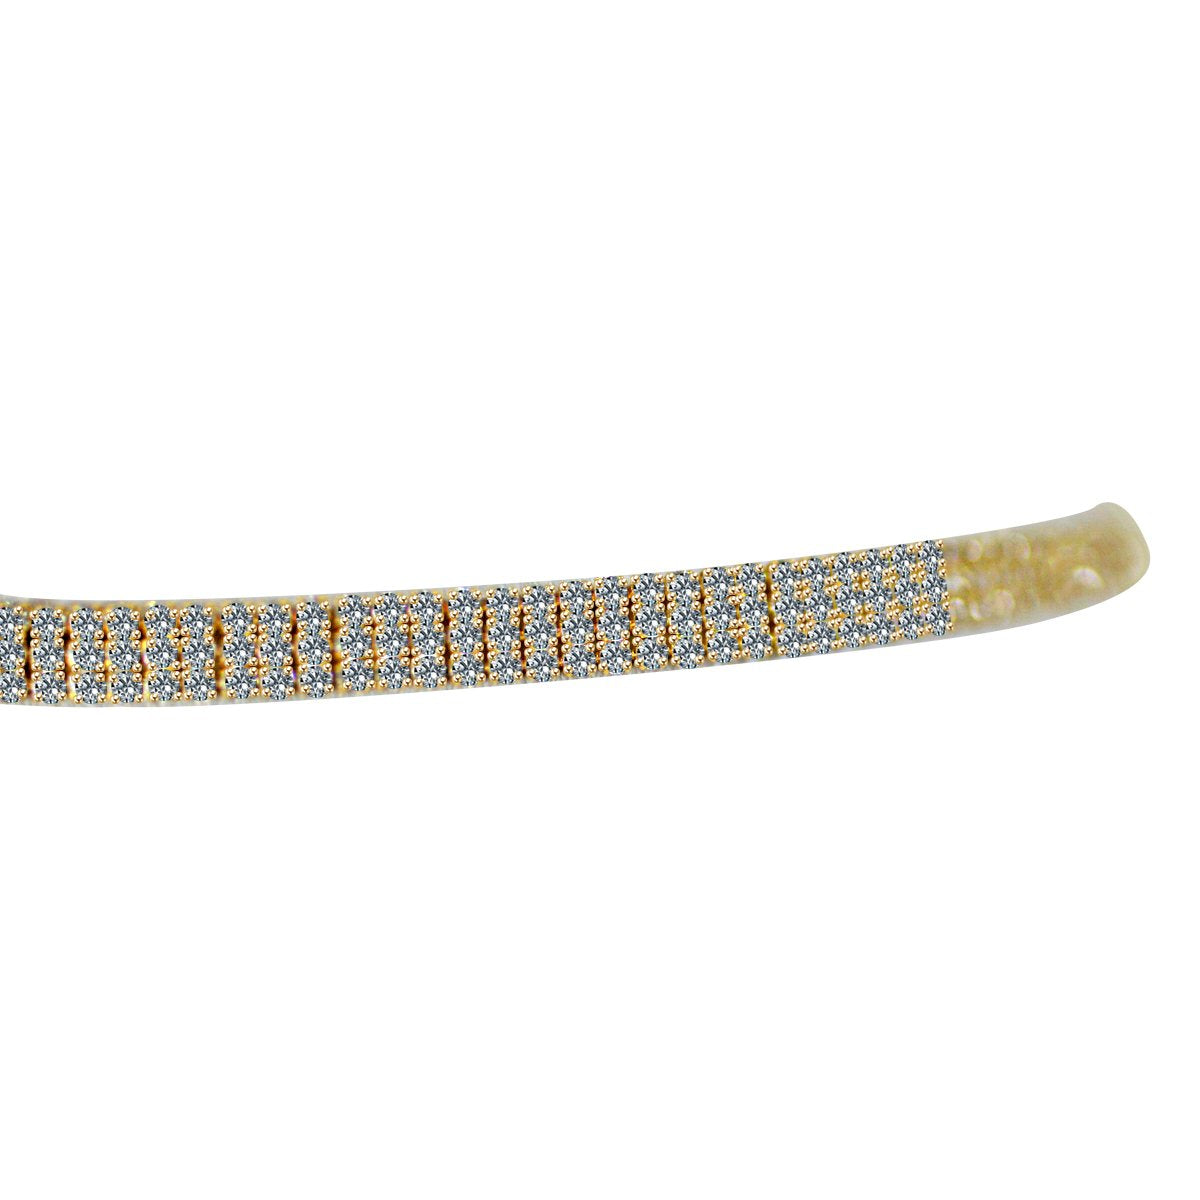 3-ROW FINE CRYSTAL RHINESTONES CHOKER NECKLACE 700C0073